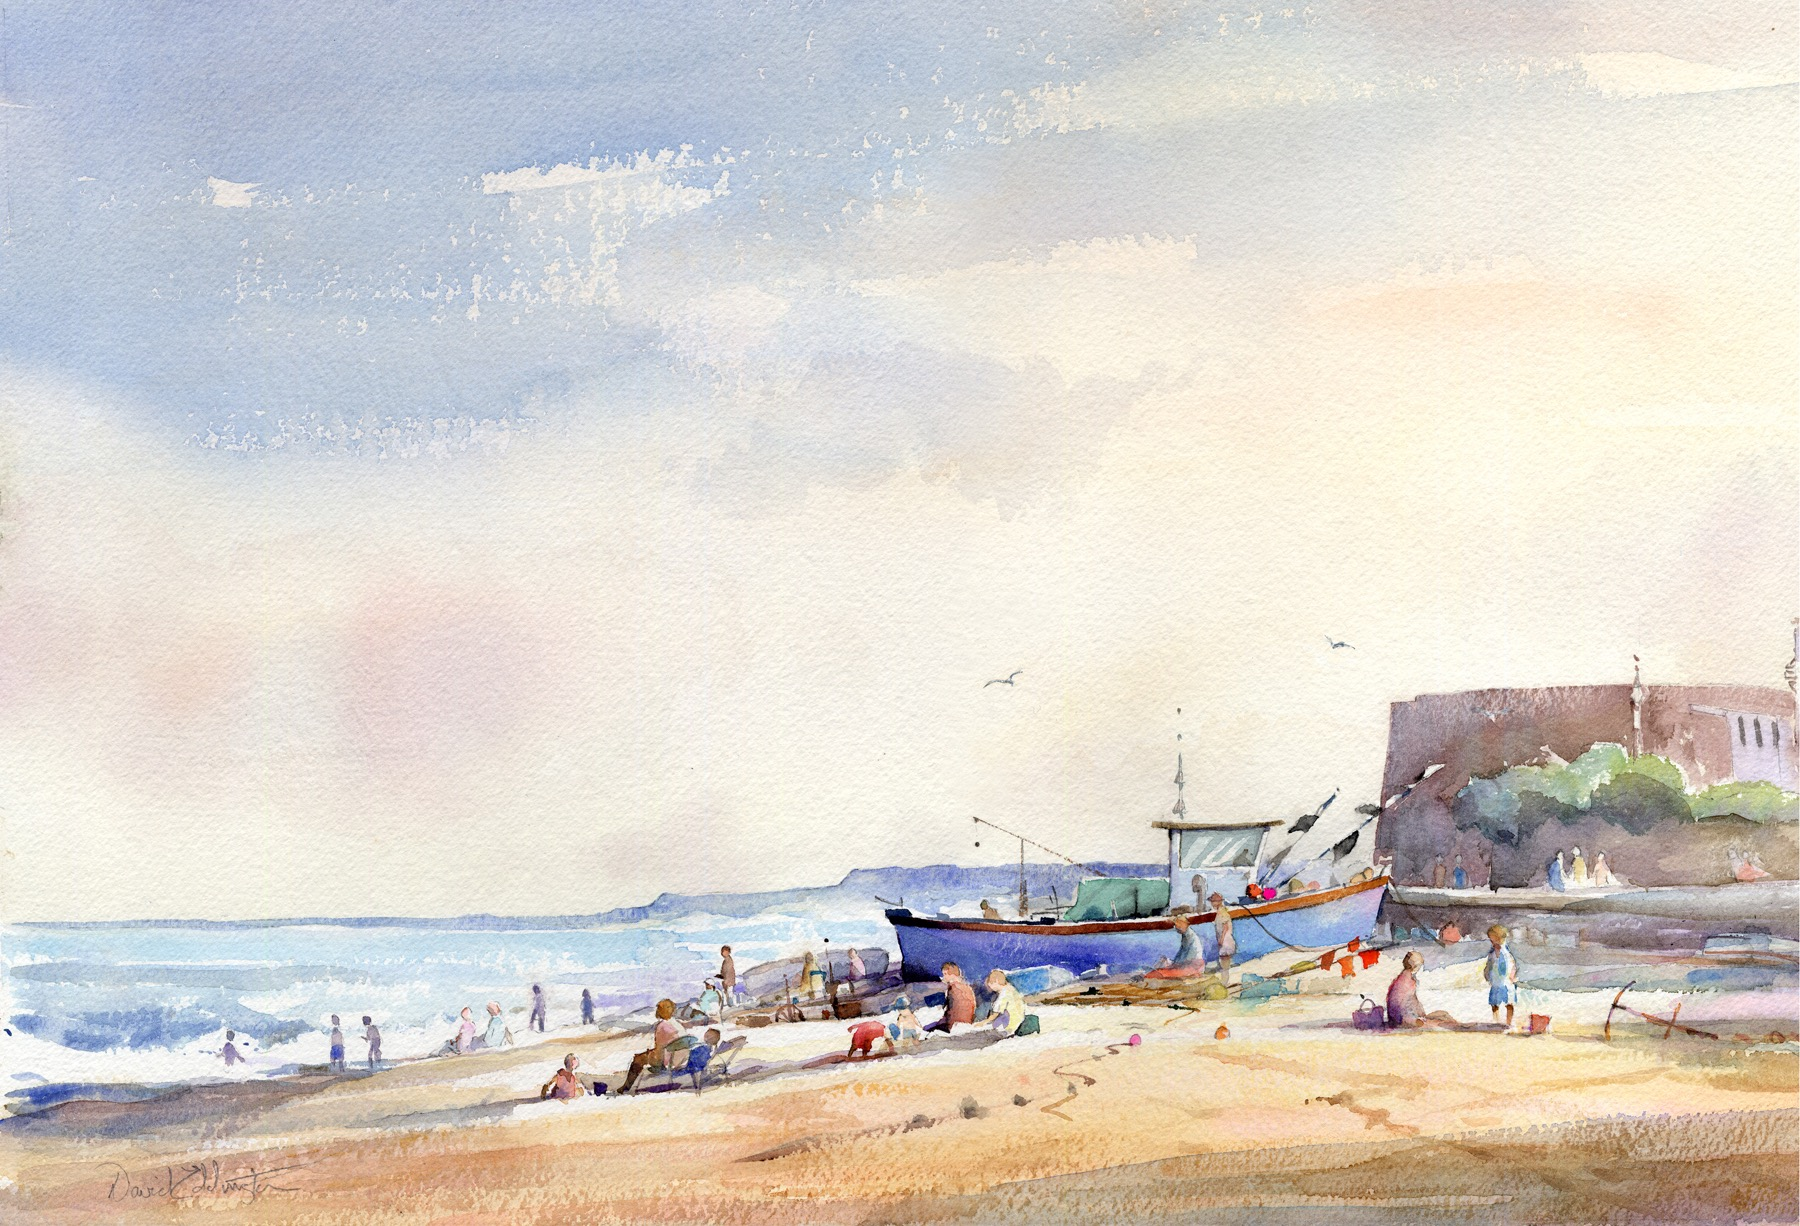 ENJOYING THE BEACH ALDEBURGH: 14.5 x 20.5: Watercolour